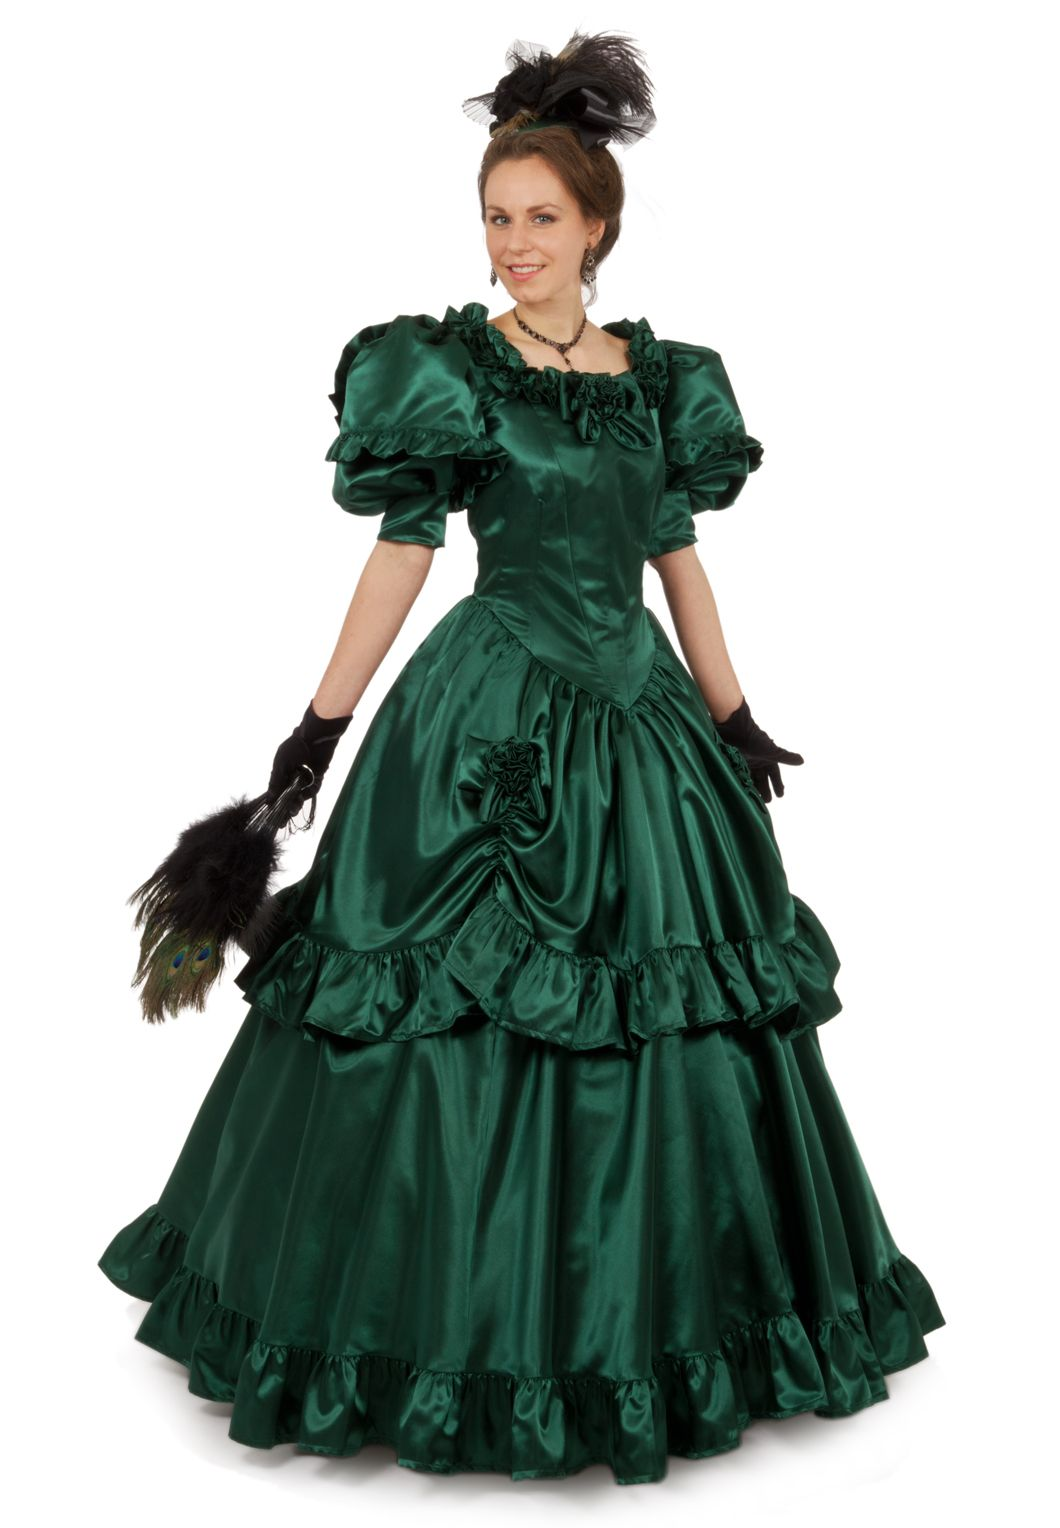 Magnolia Victorian Satin Ball Gown Ball Gowns Vintage Gowns Victorian Gown [ 1528 x 1060 Pixel ]